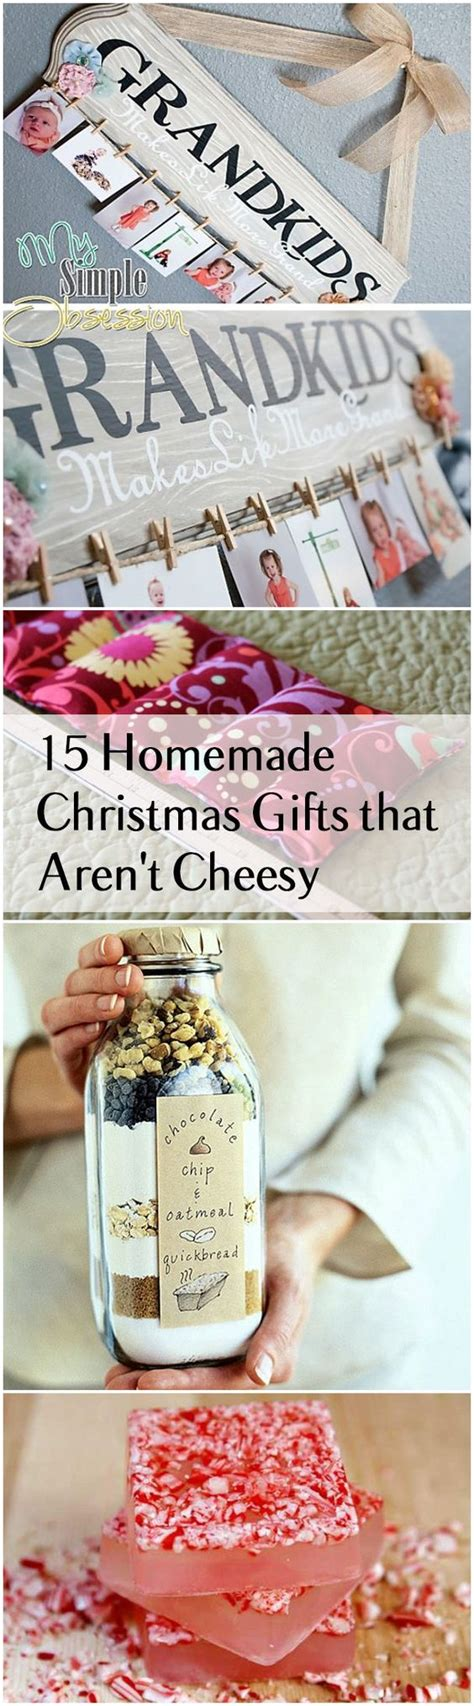 15 homemade christmas gifts that aren t cheesy homemade